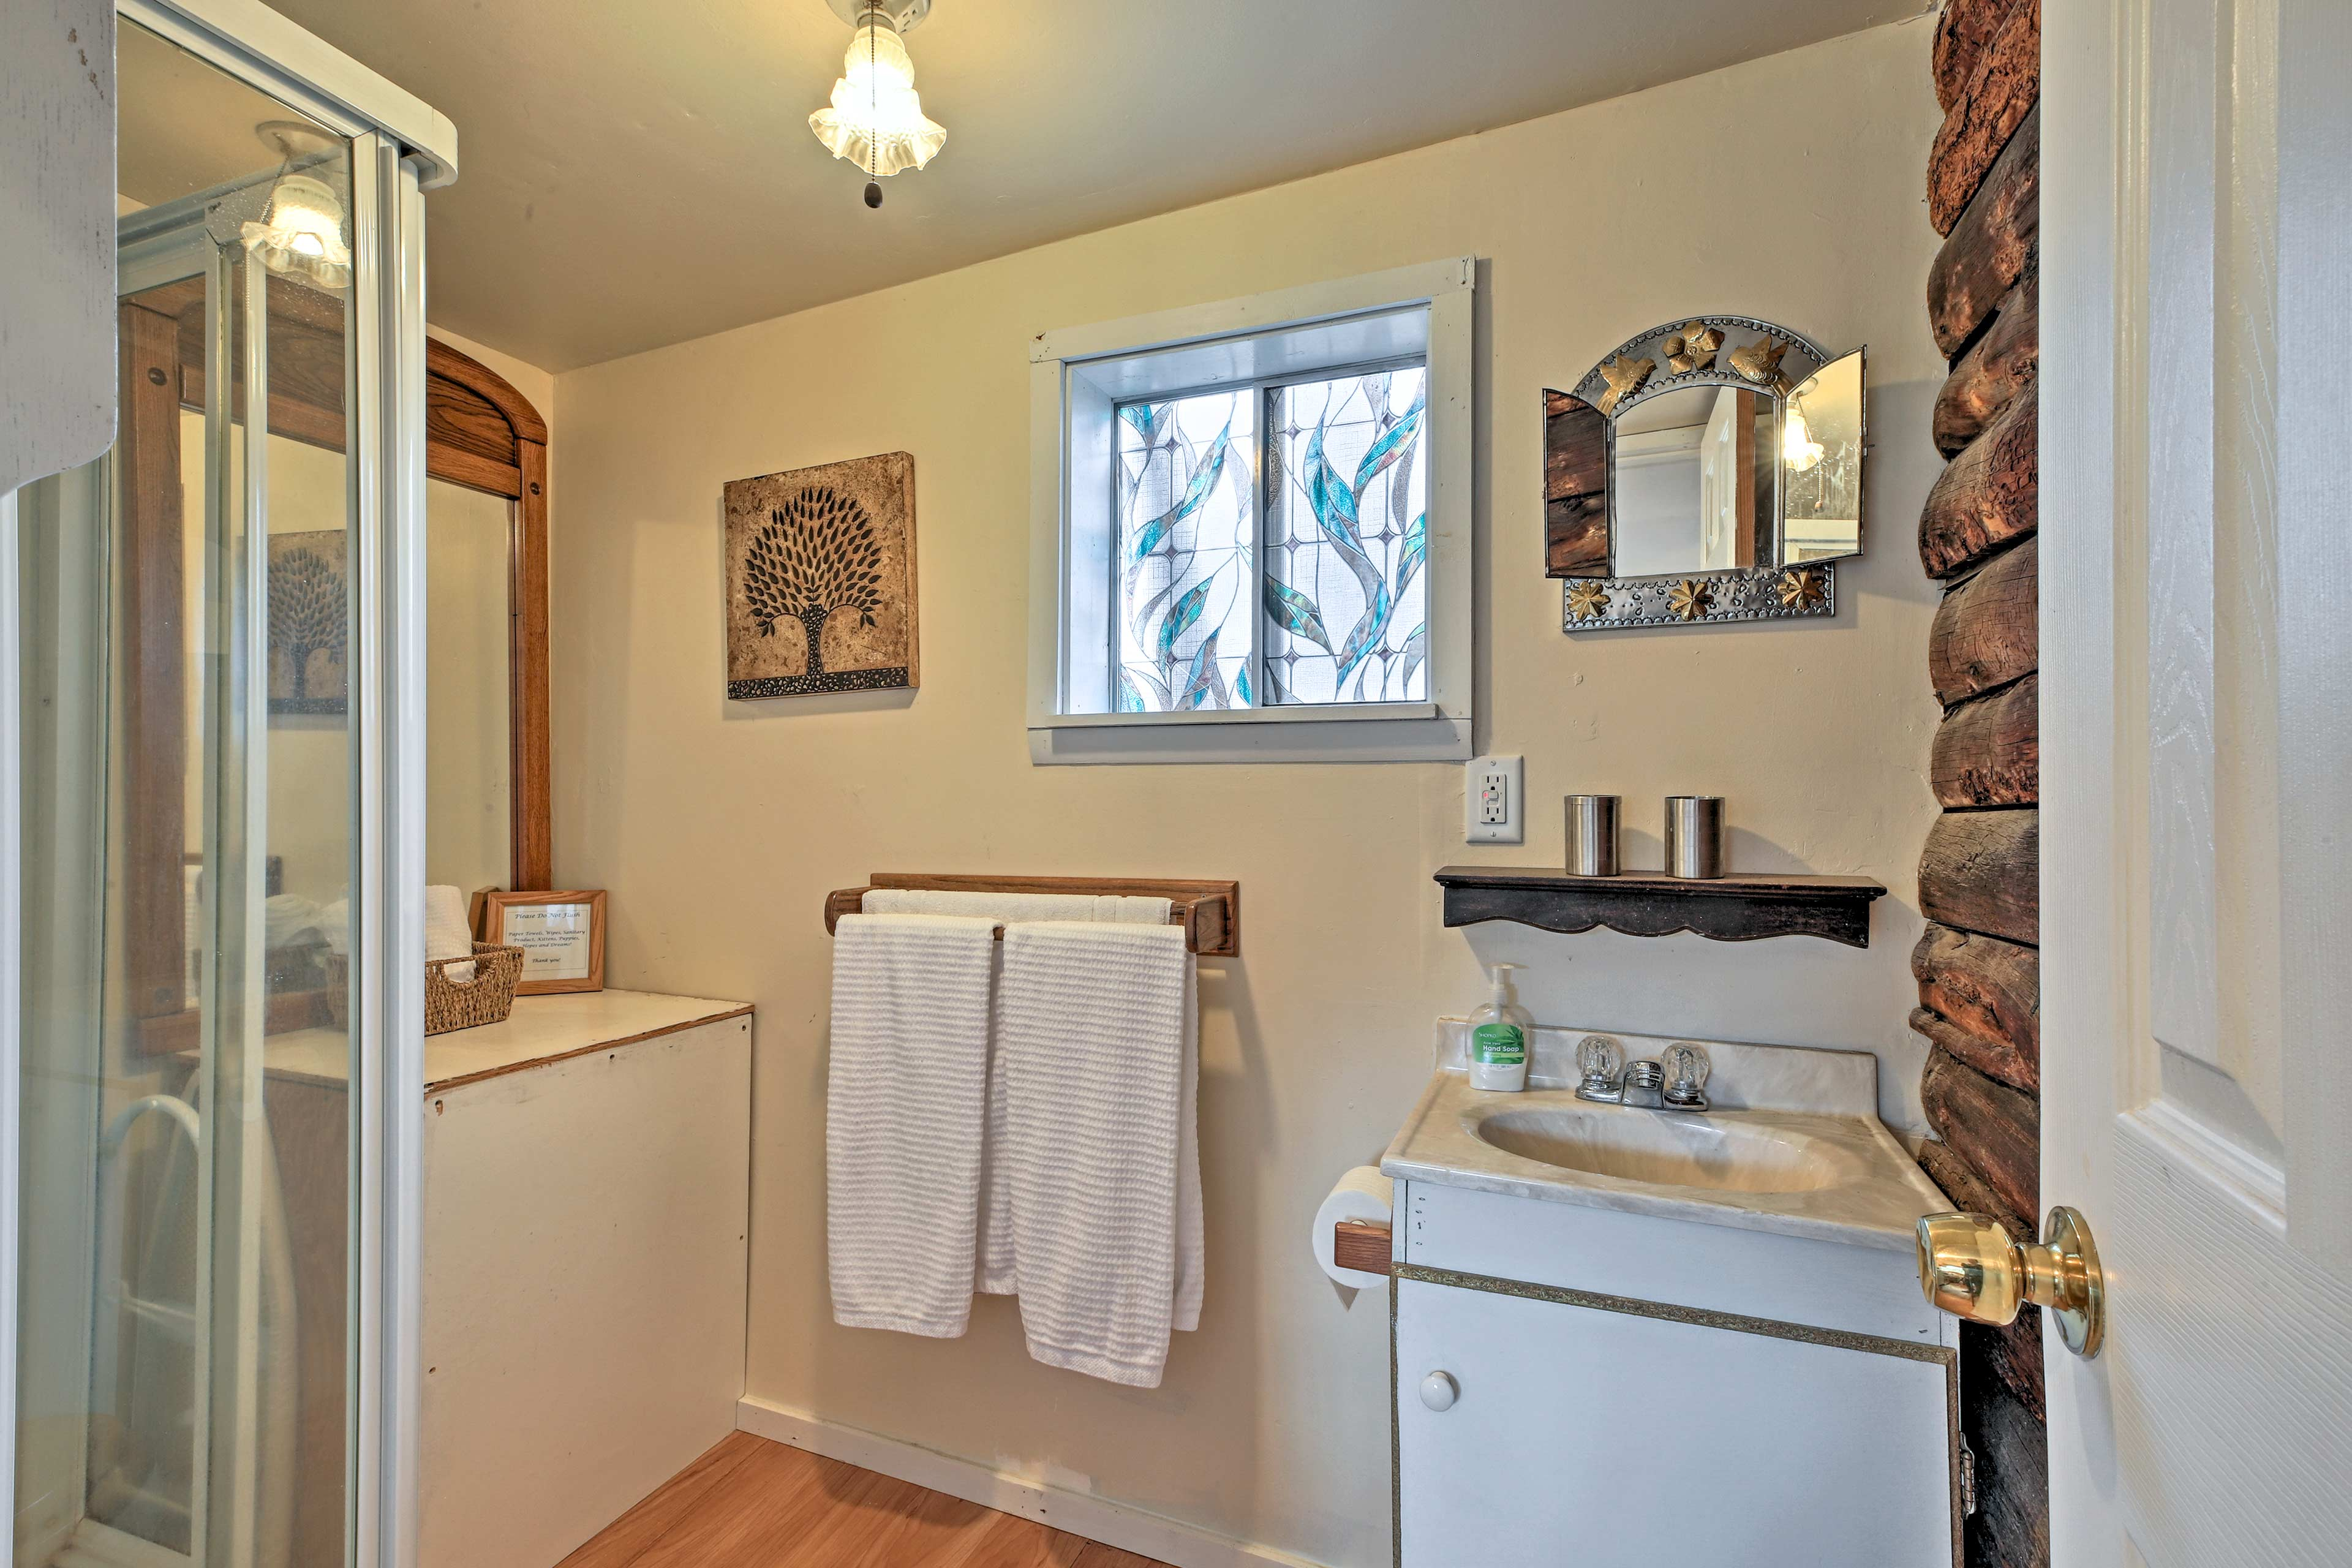 The bathroom offers plenty of space to get ready!